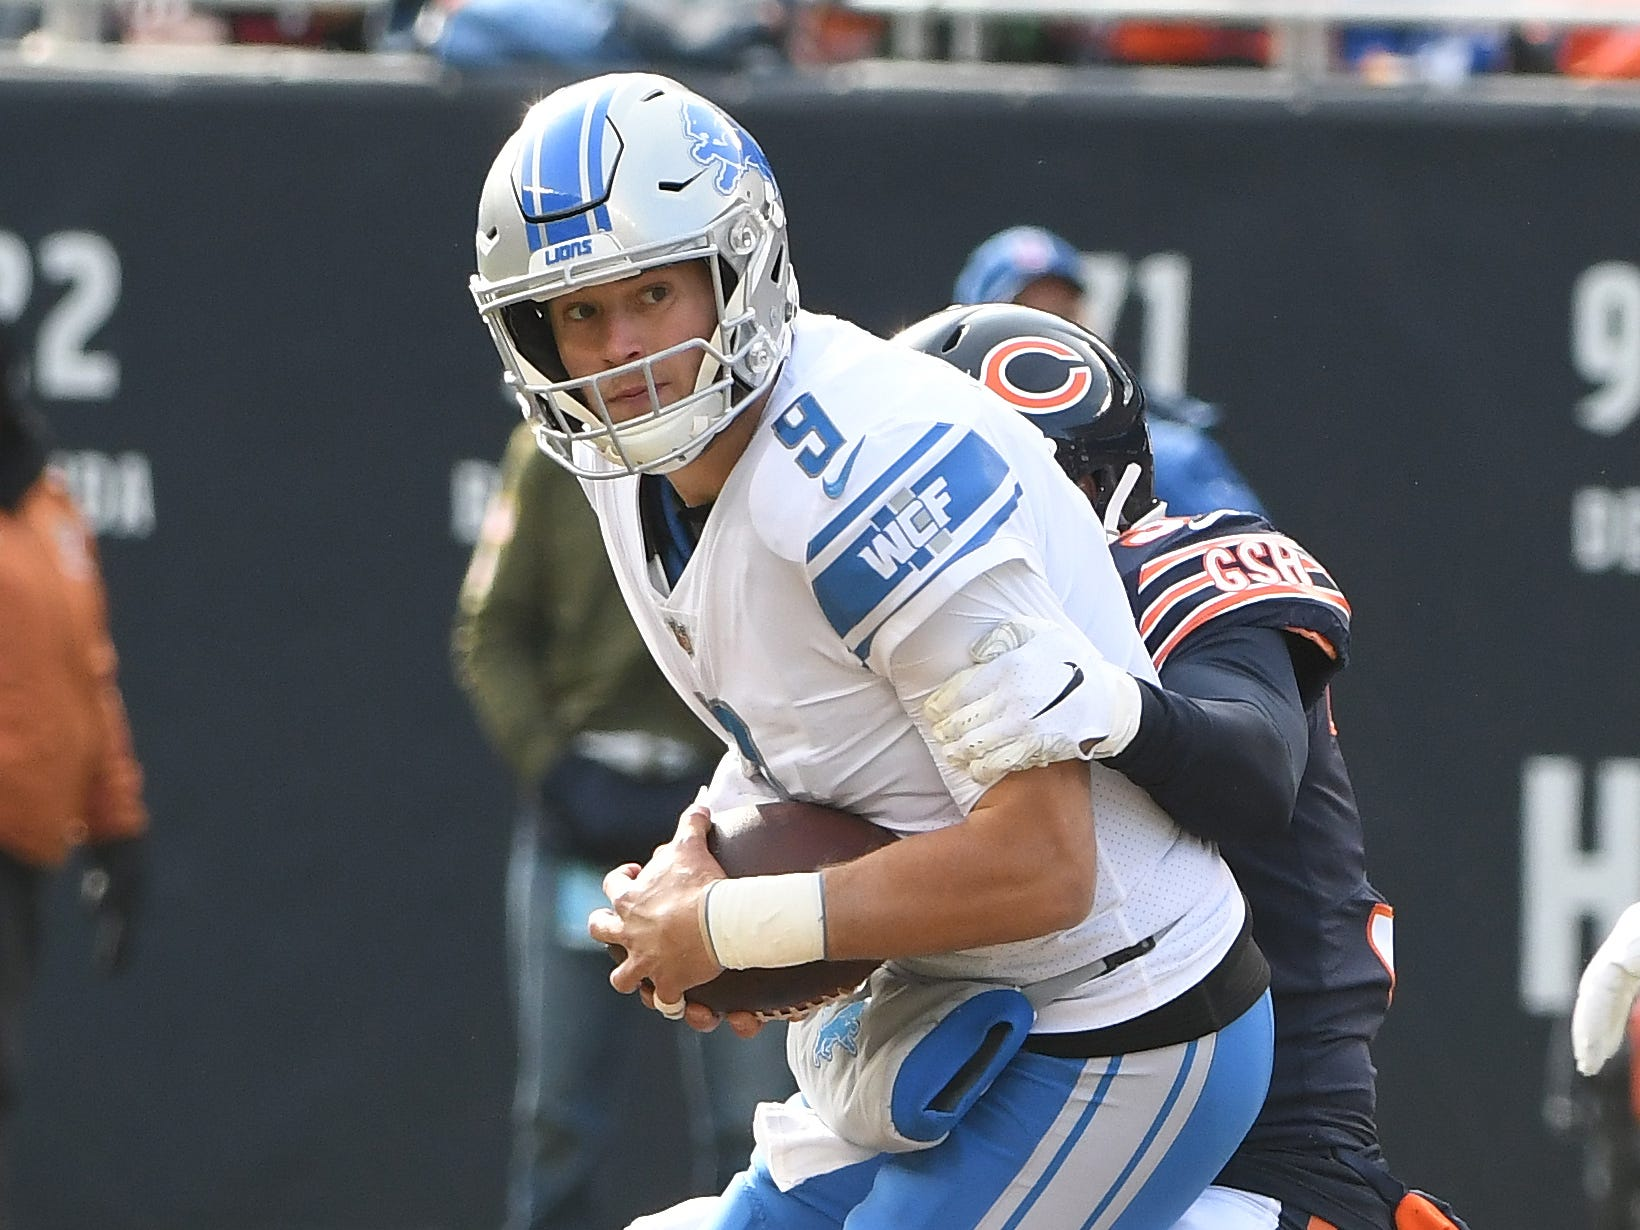 Lions quarterback Matthew Stafford is sacked by Bears' Bryce Callahn in the fist quarter.